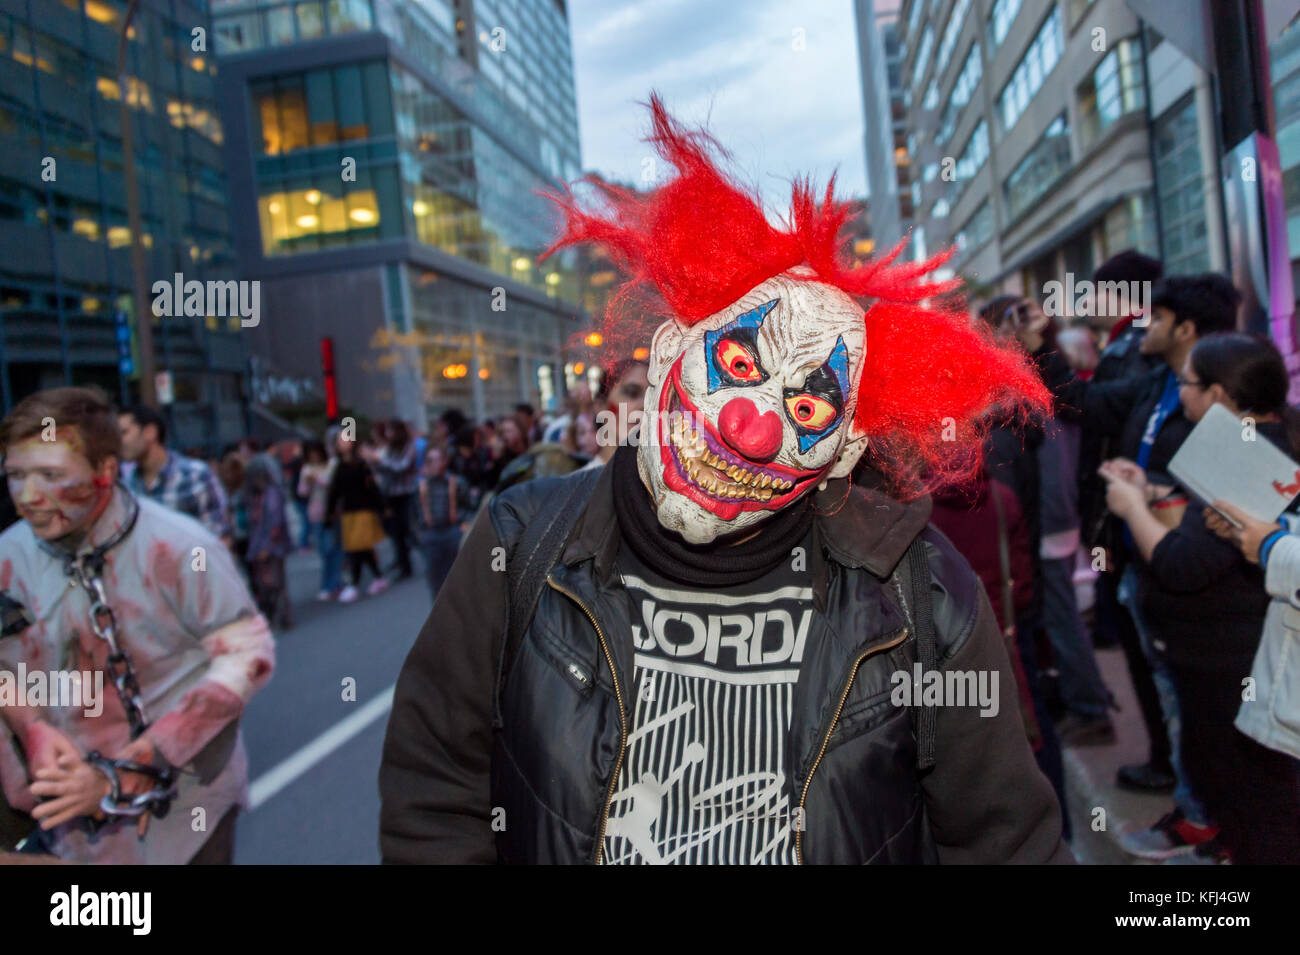 Montreal, Canada - October 28, 2017: Scary clown taking part in the Zombie Walk in Montreal Downtown - Stock Image